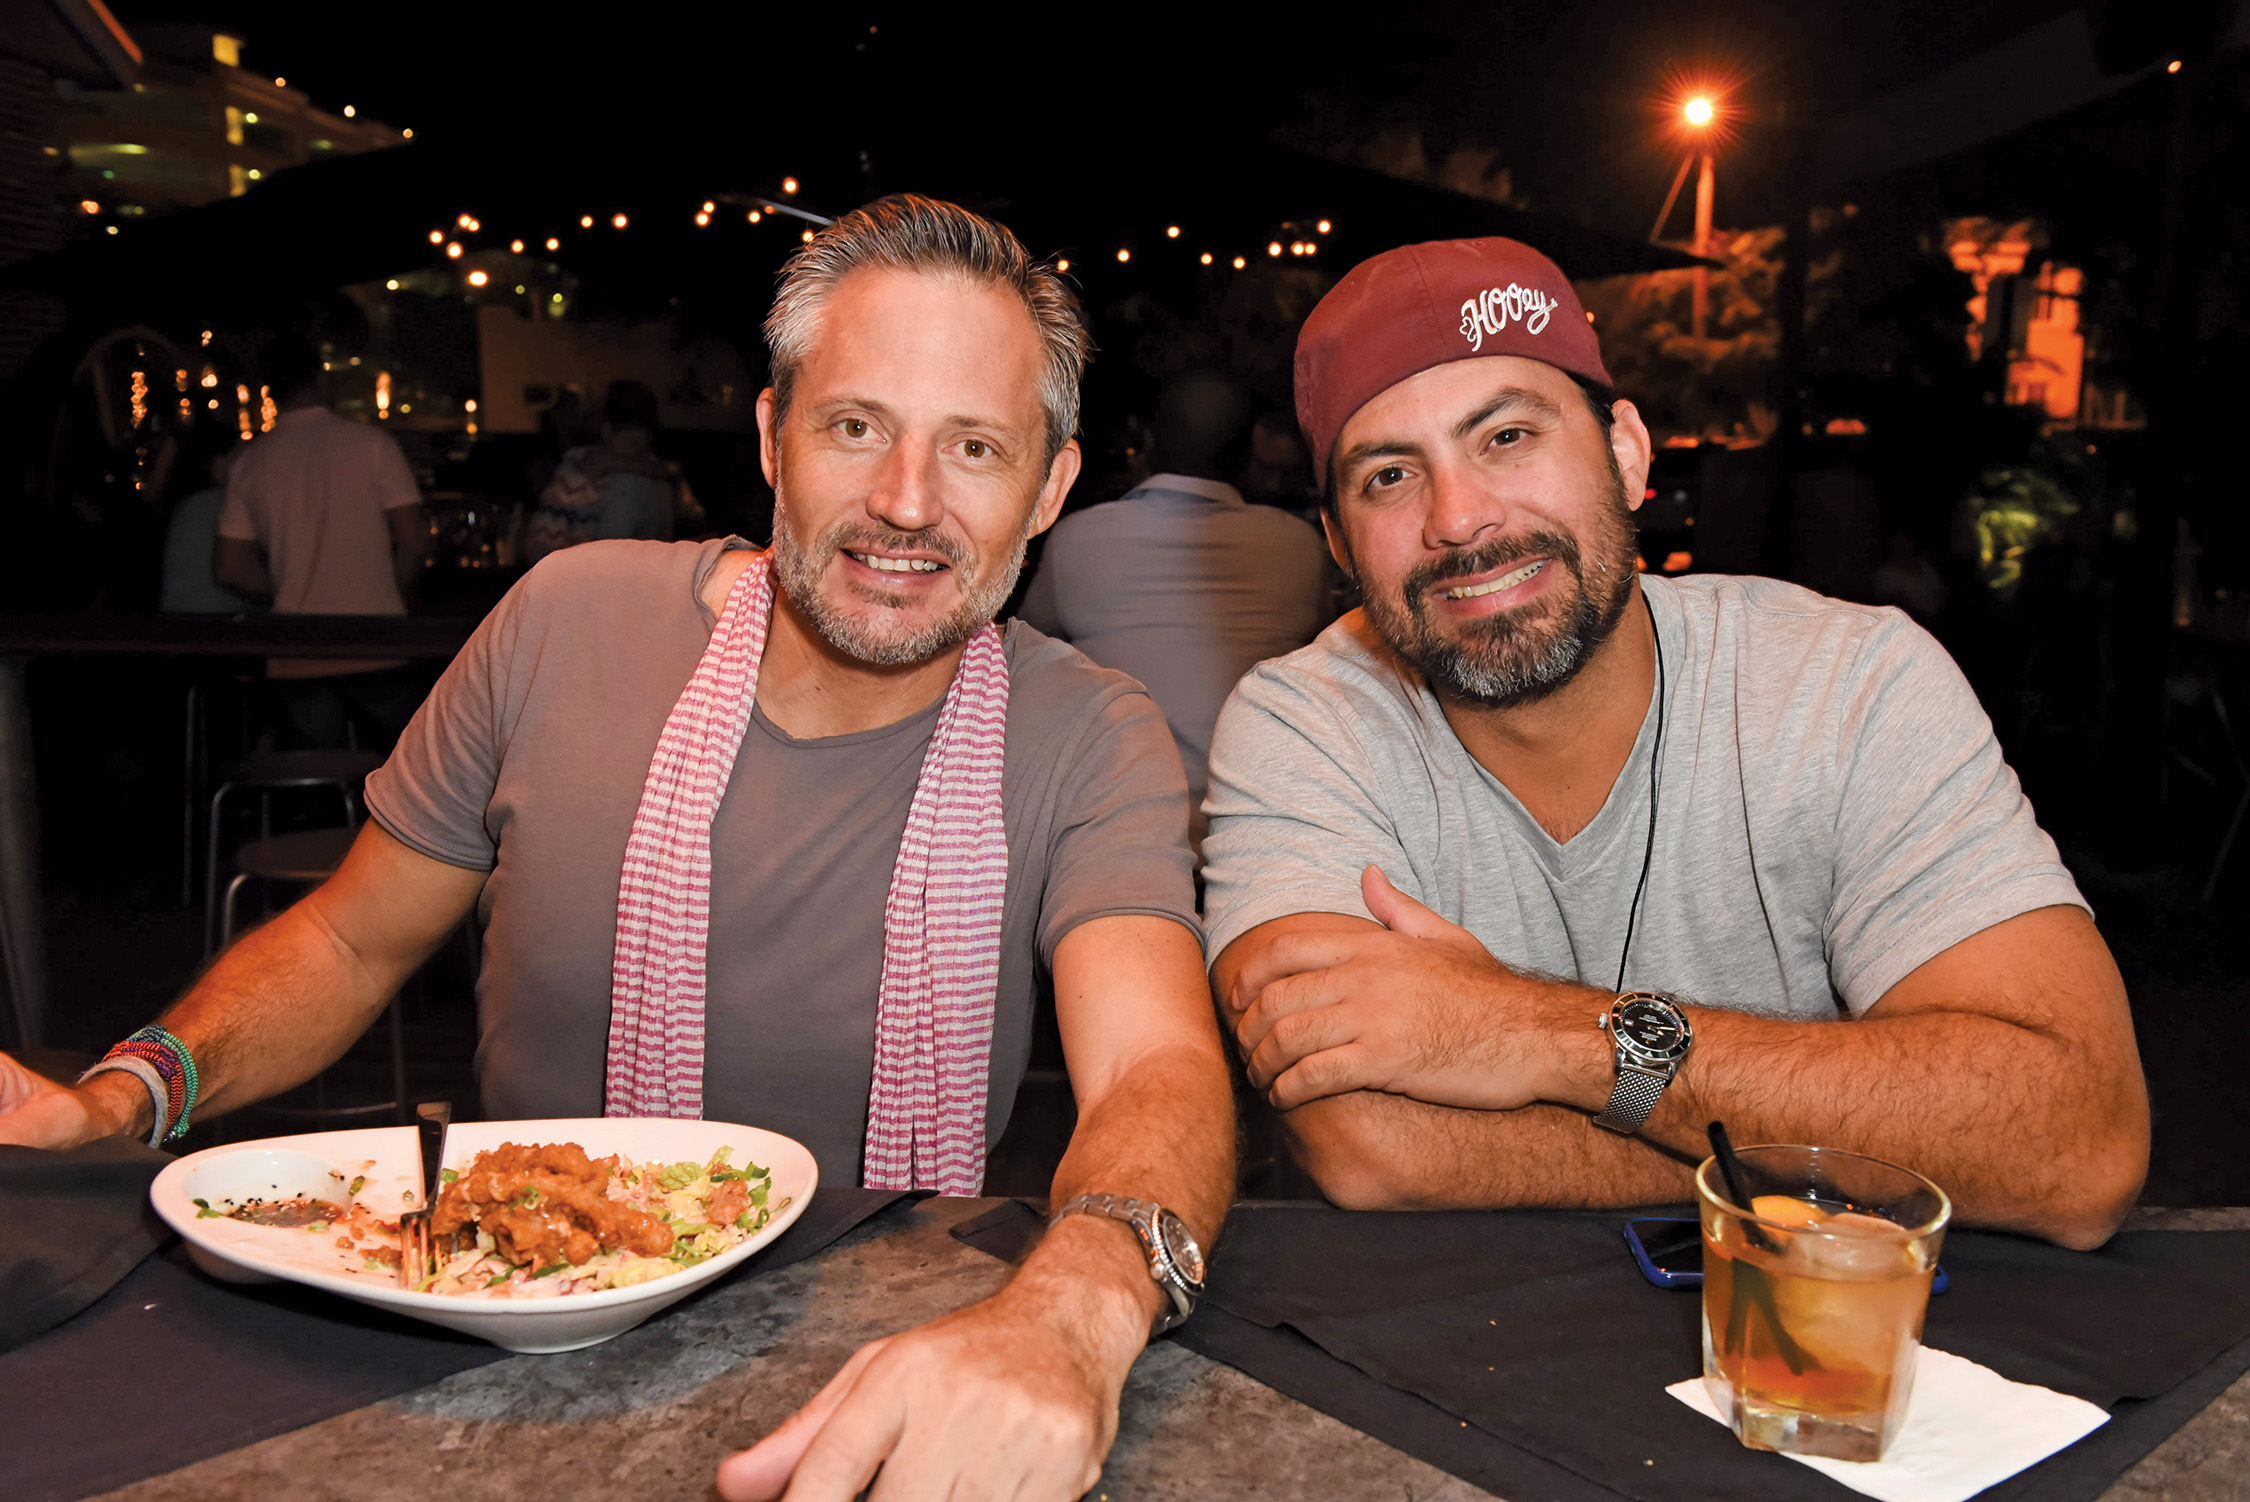 Ryan-Frayne-and-Chad-Weiner-Around-Town-The-Seen-Fort-Lauderdale-Venice-Magazine-Michele-Eve-Sandberg